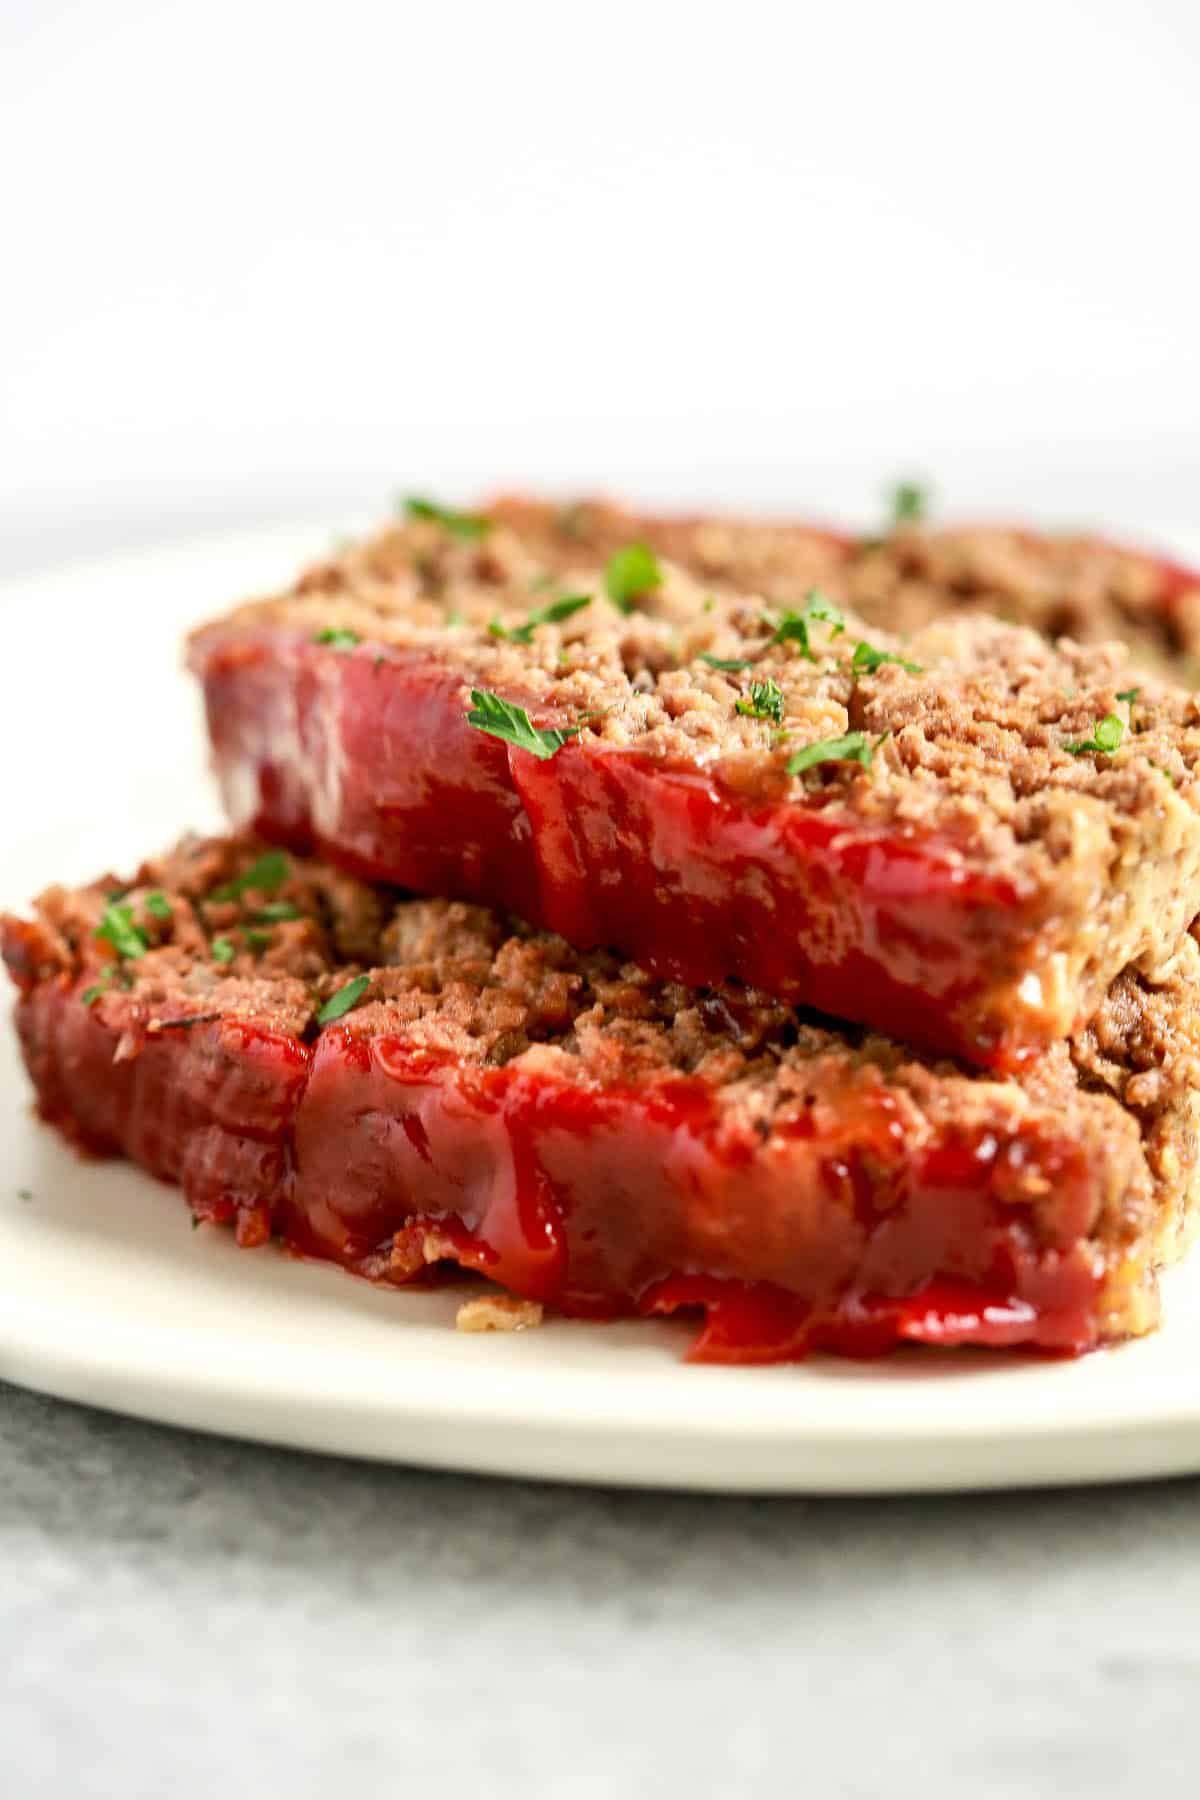 close up image: two slices of healthy meatloaf with tomato sauce on top